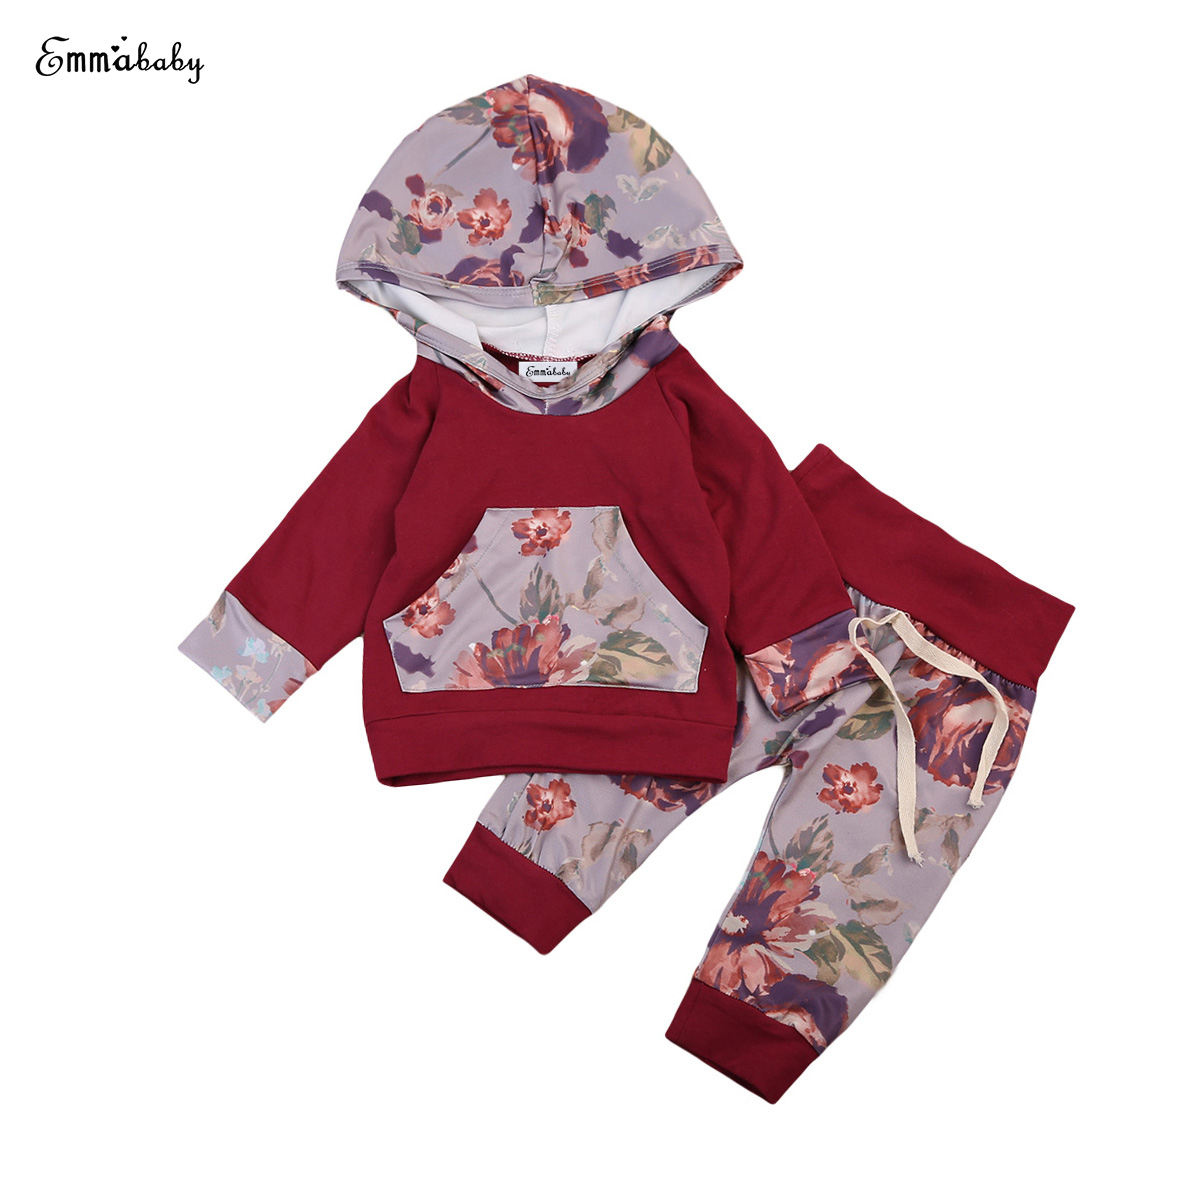 Baby Clothing 2pcs Floral Newborn Baby Boy Girls Clothes Floral Hooded T-shirt Tops+Pants Outfits Set